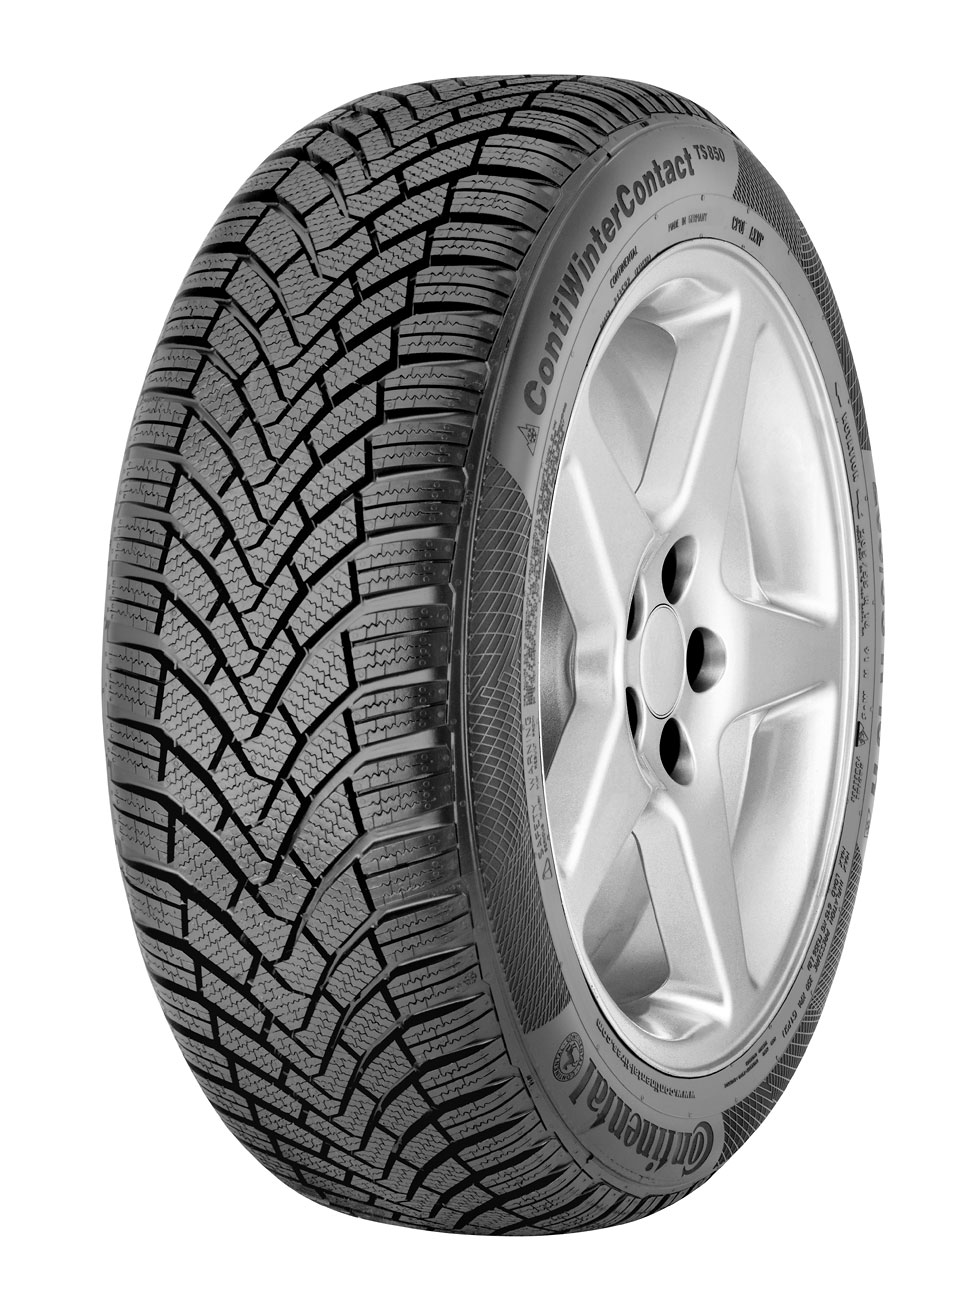 235/45R17 94H, Continental, WinterContact TS 850 P